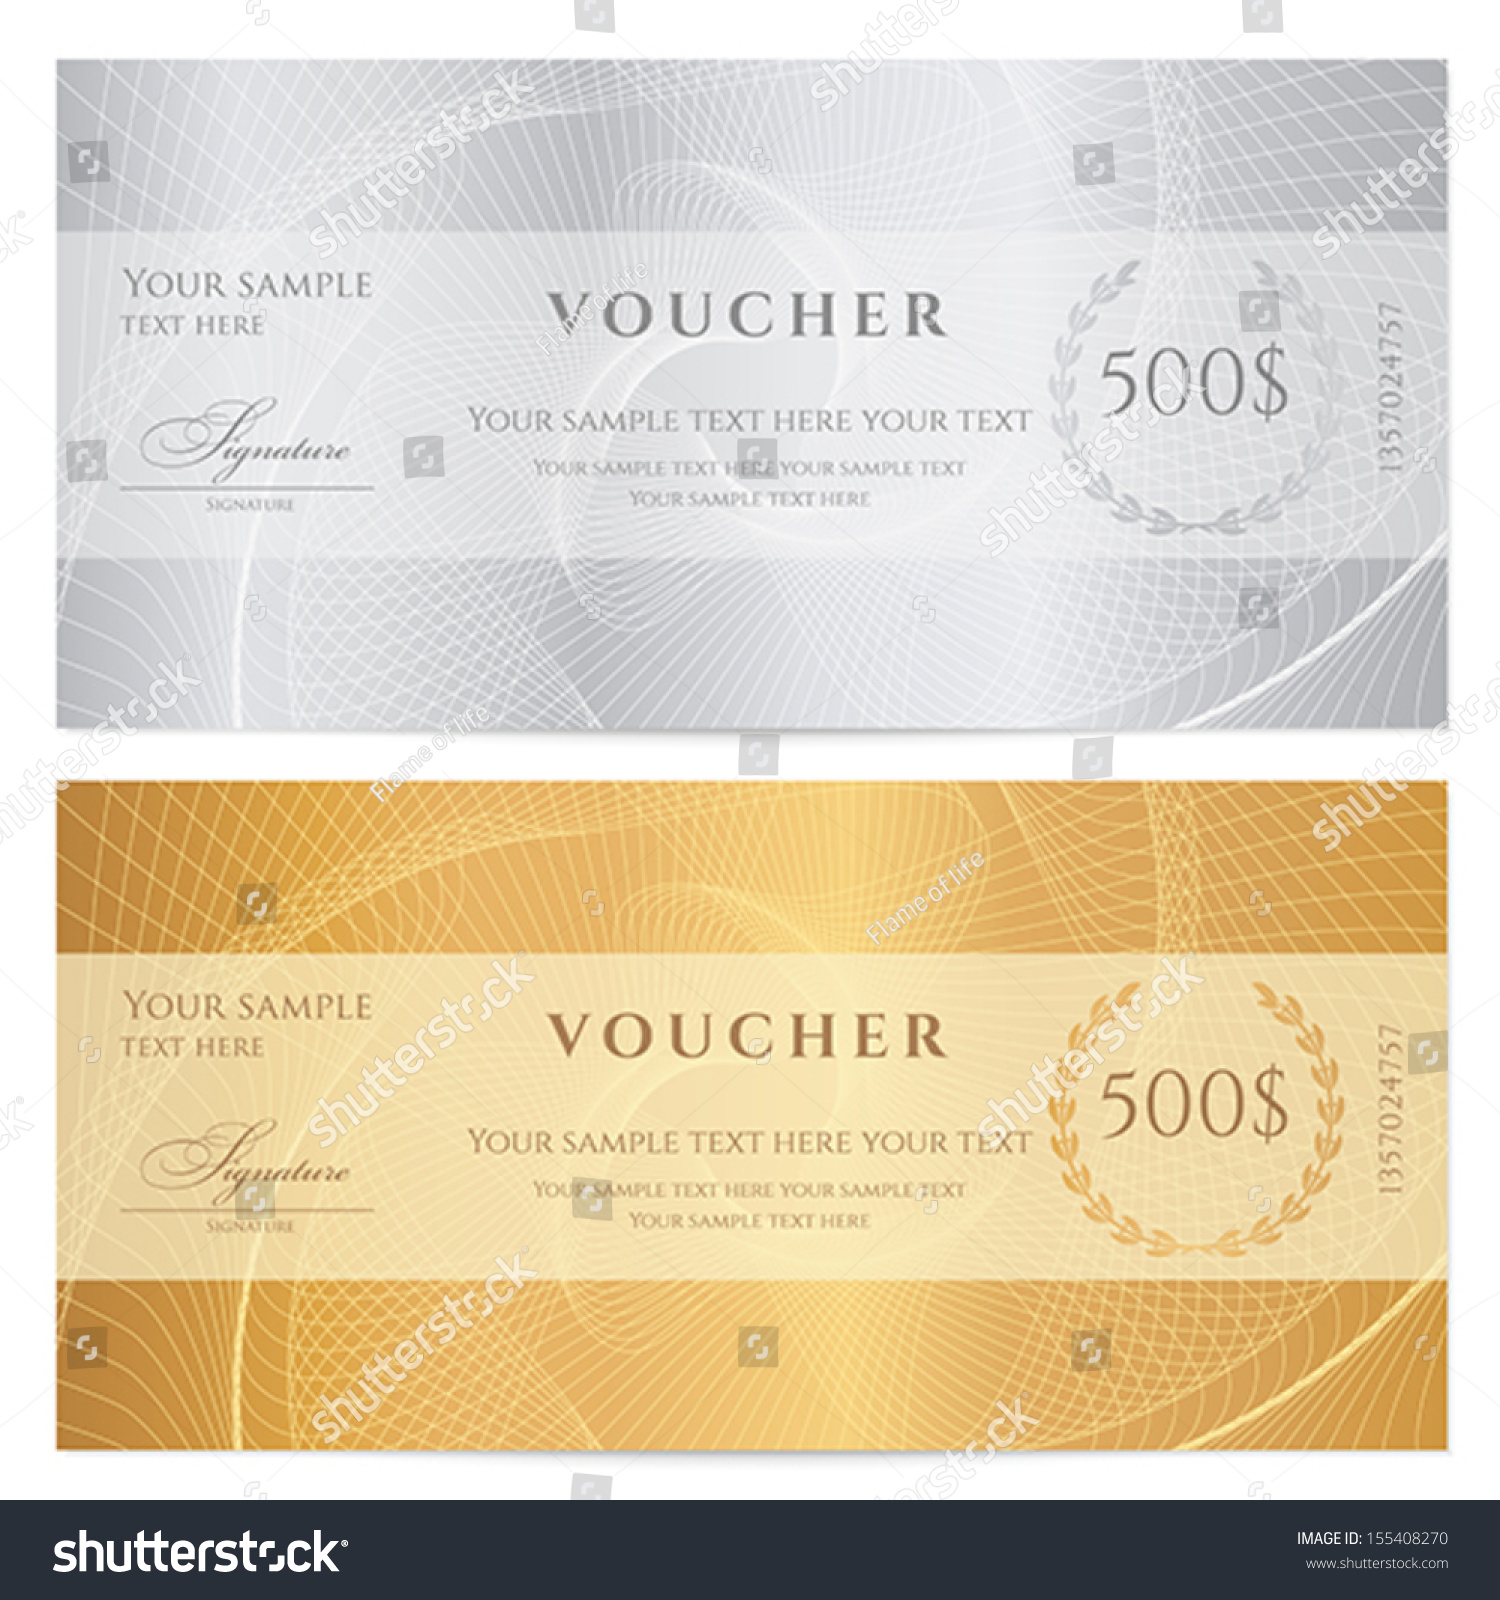 Voucher Gift Certificate Coupon Ticket Template Vector – Check Voucher Template